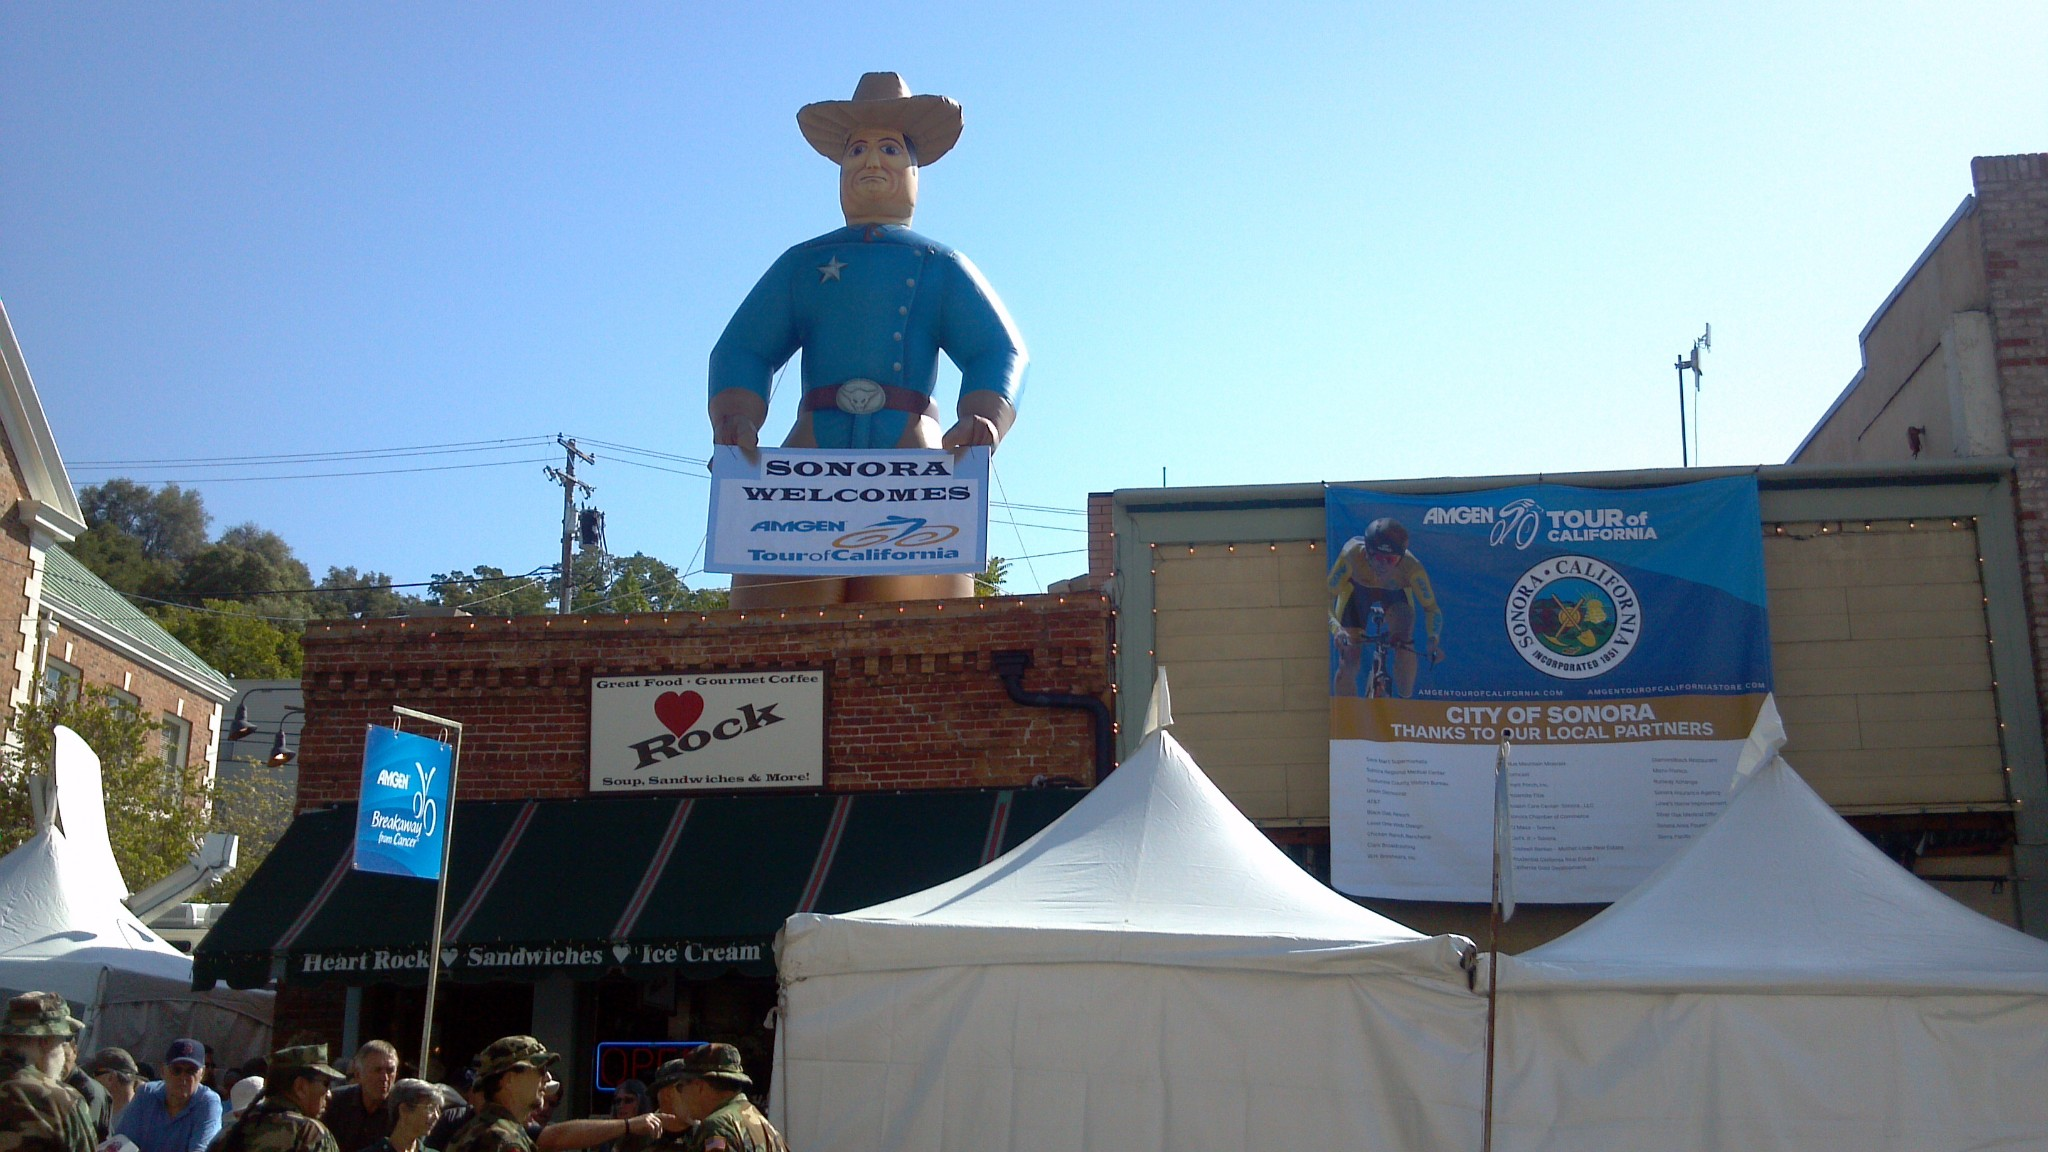 Photo: Sonora welcomes Amgen